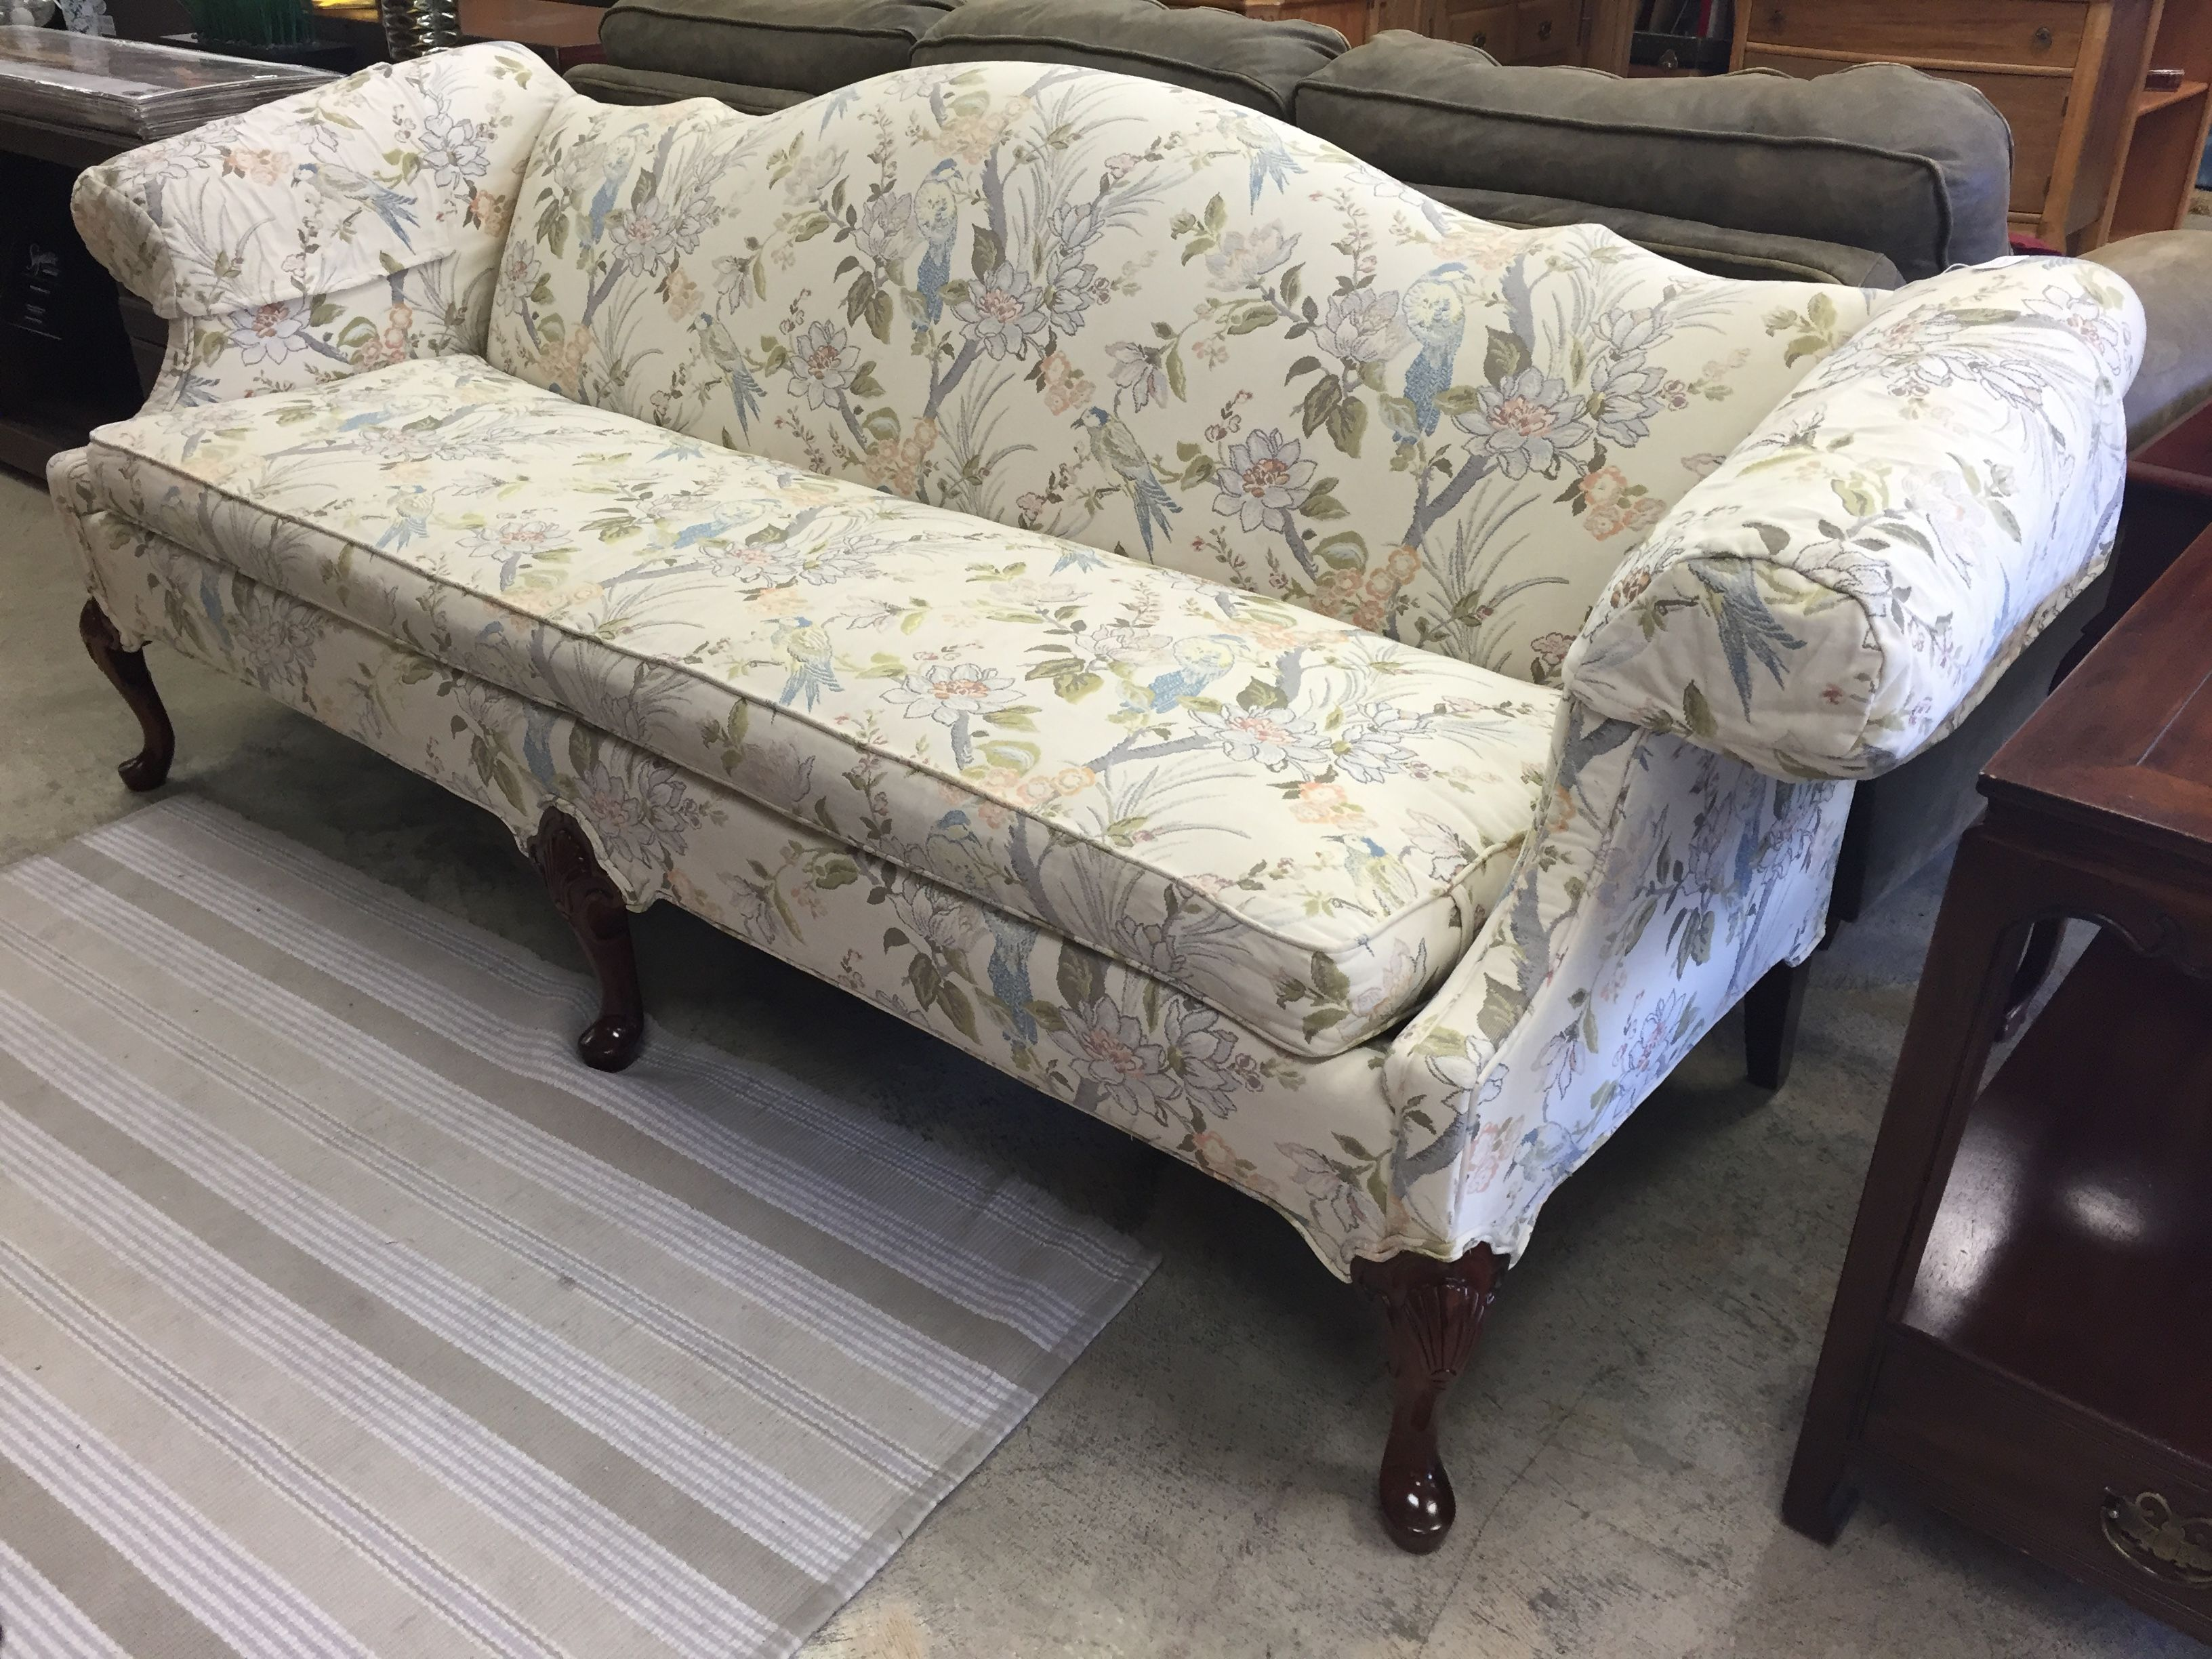 Stunning Pennsylvania House Sofa 1200 Online At Mkconsignment Livingroom Decor Design Color Home Apartment Couch Fancy